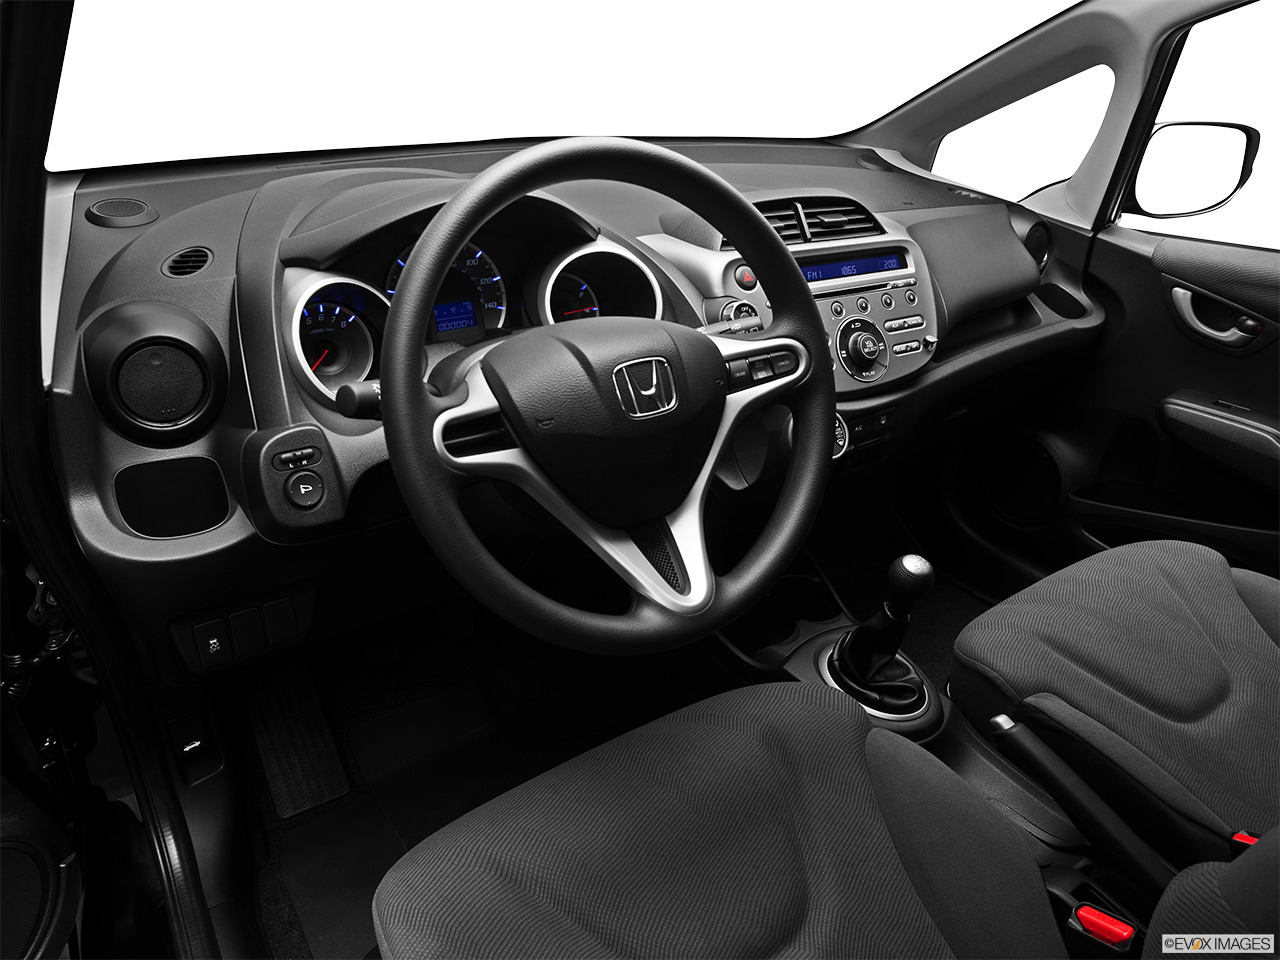 Honda Fit 2012 Interior